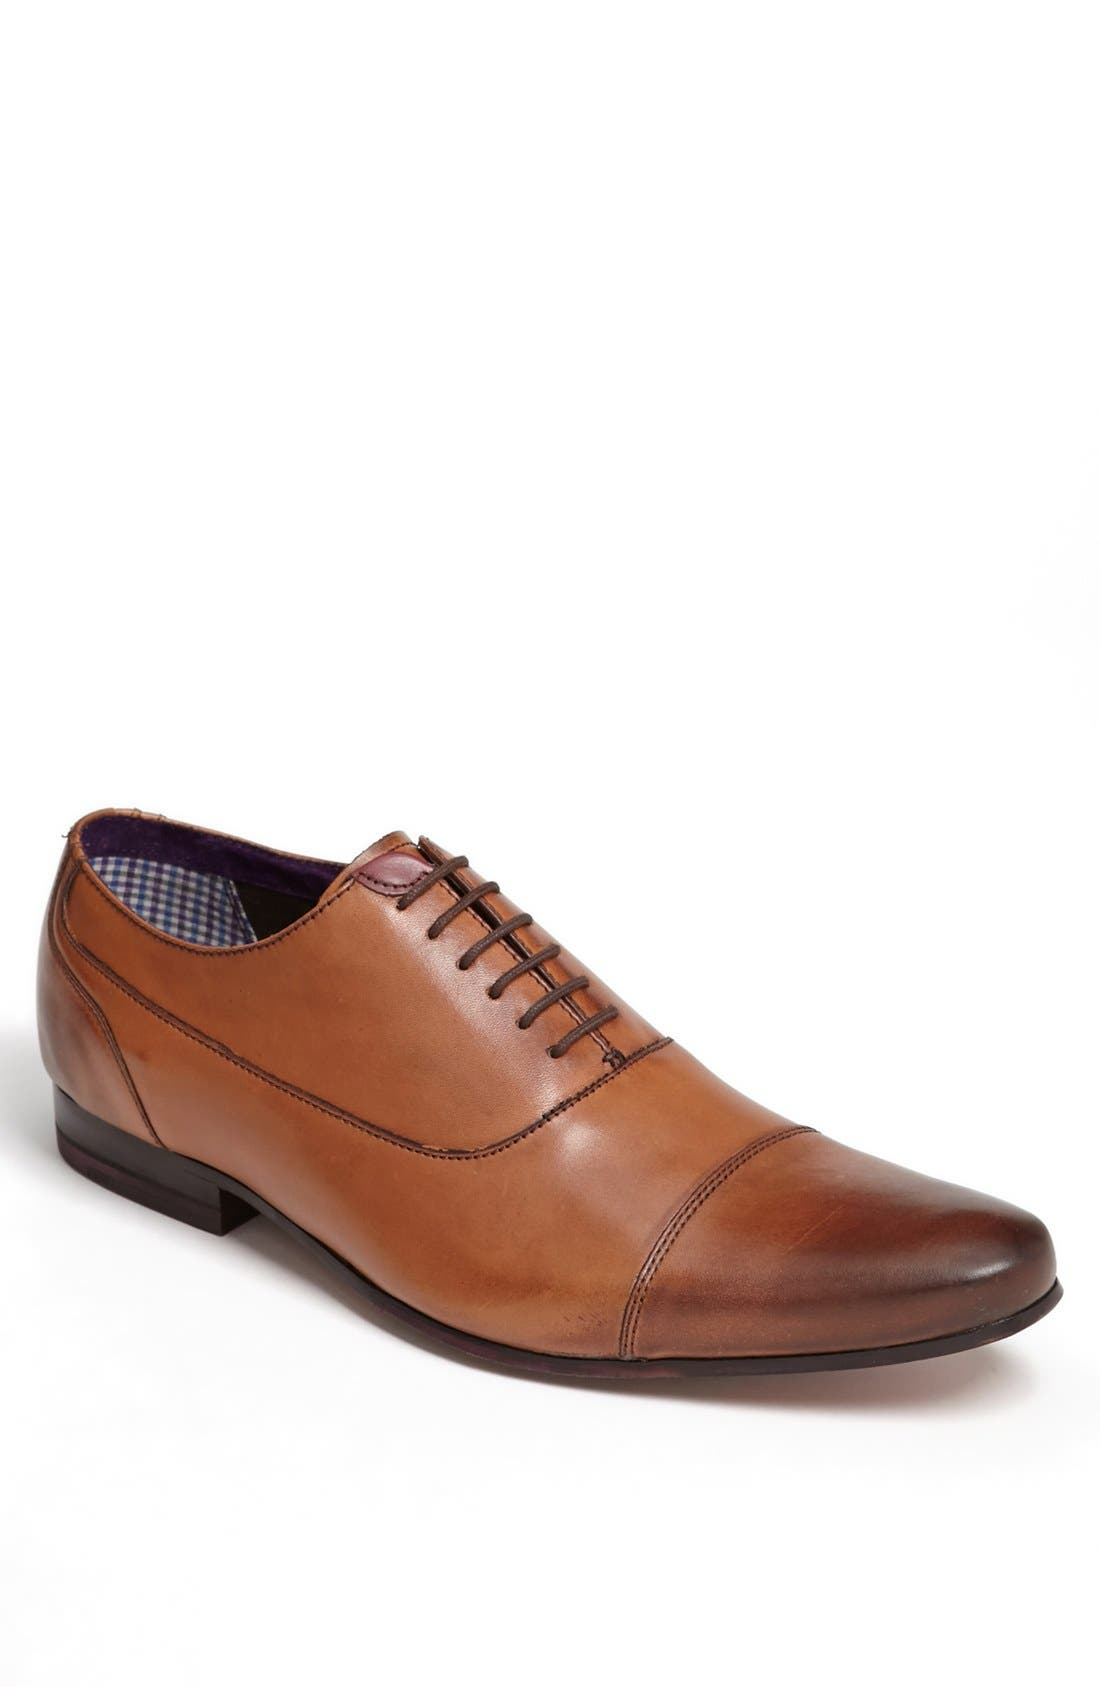 Main Image - Ted Baker London 'Churen 3' Cap Toe Oxford